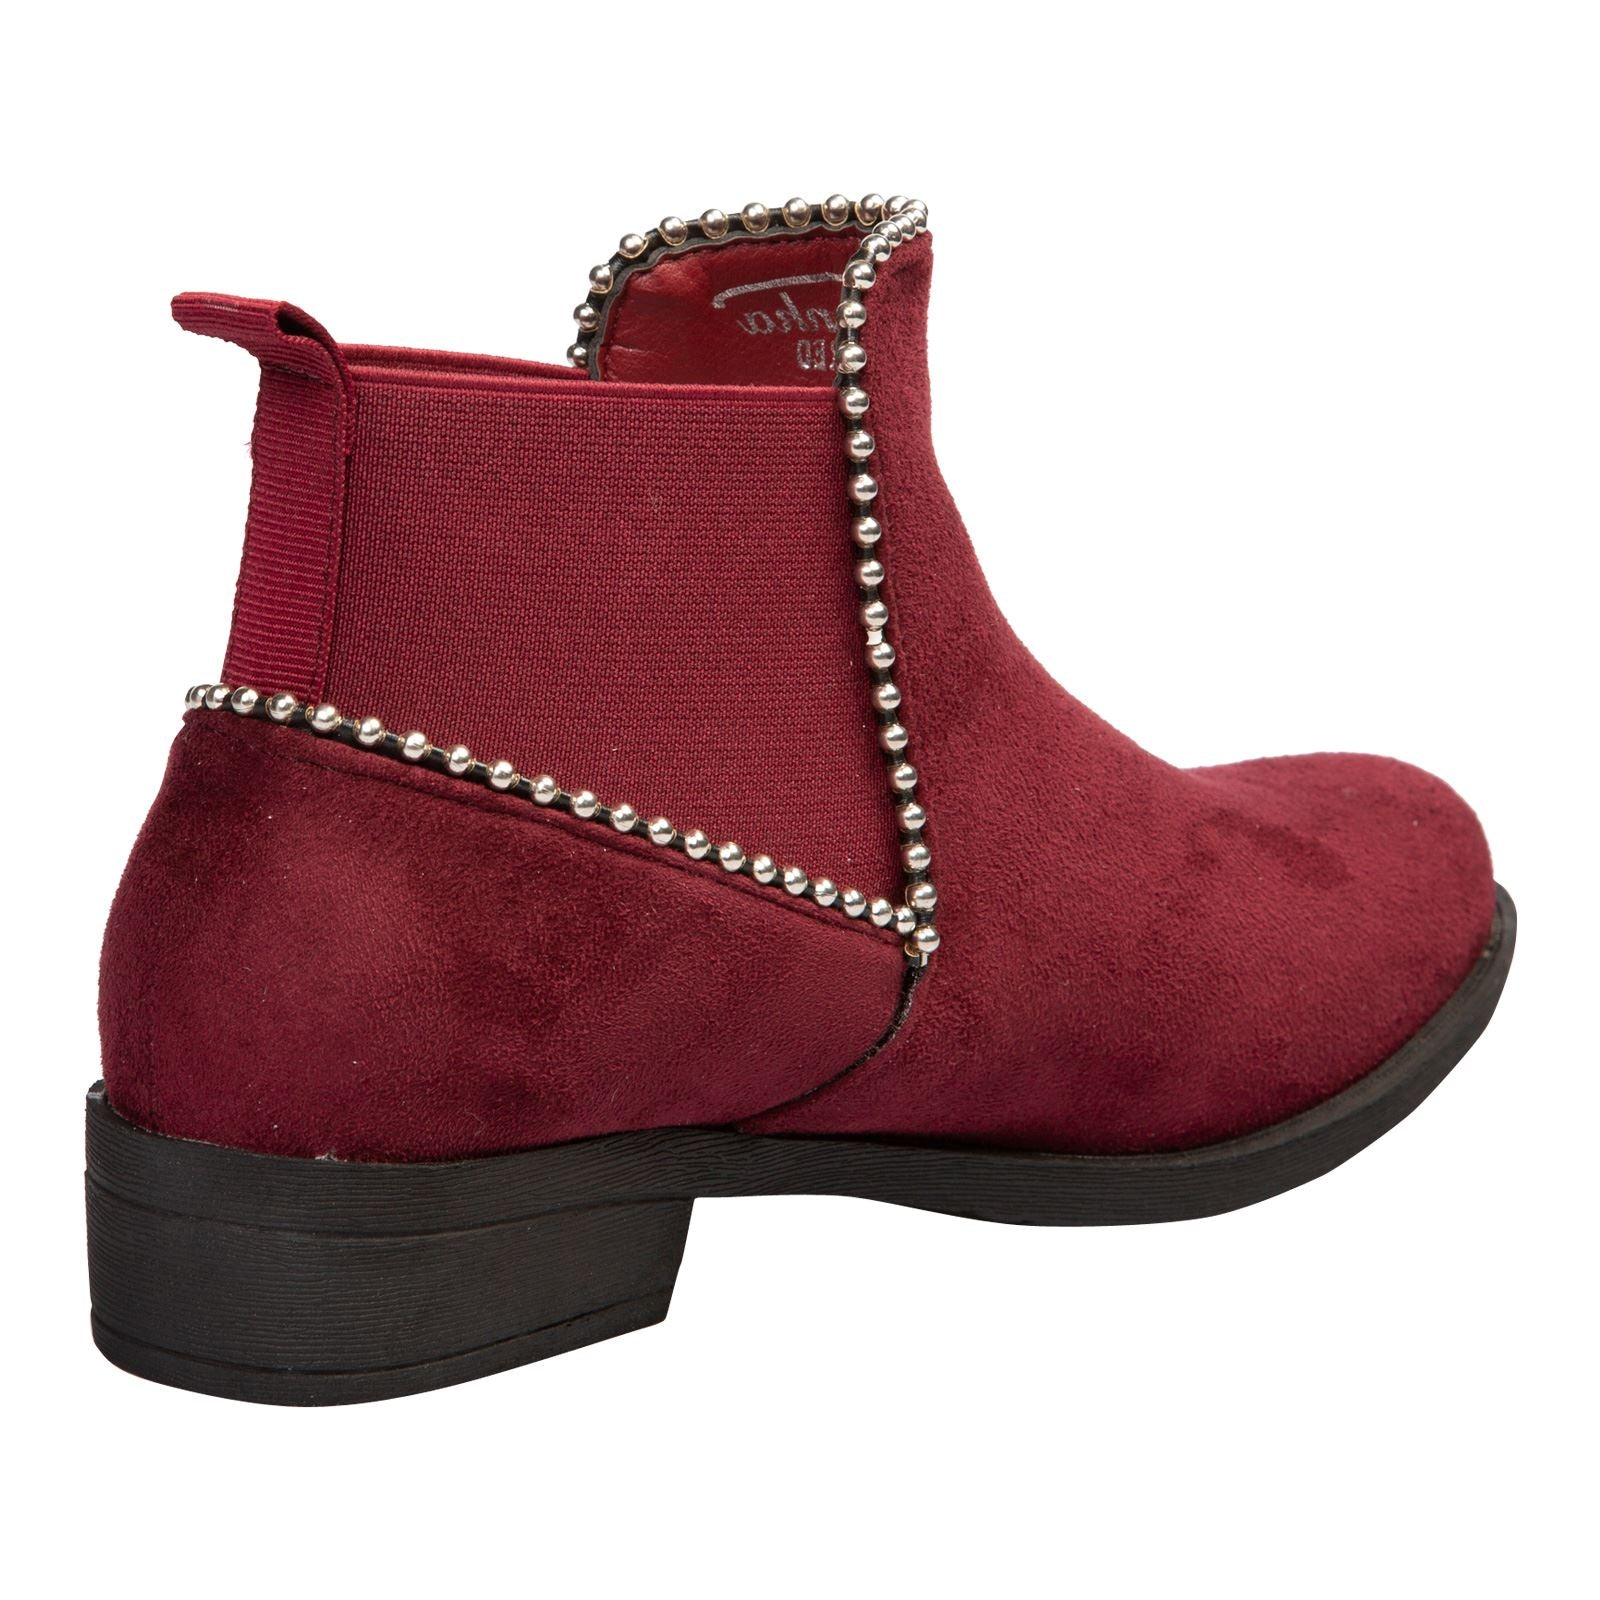 in Wine Red Faux Suede